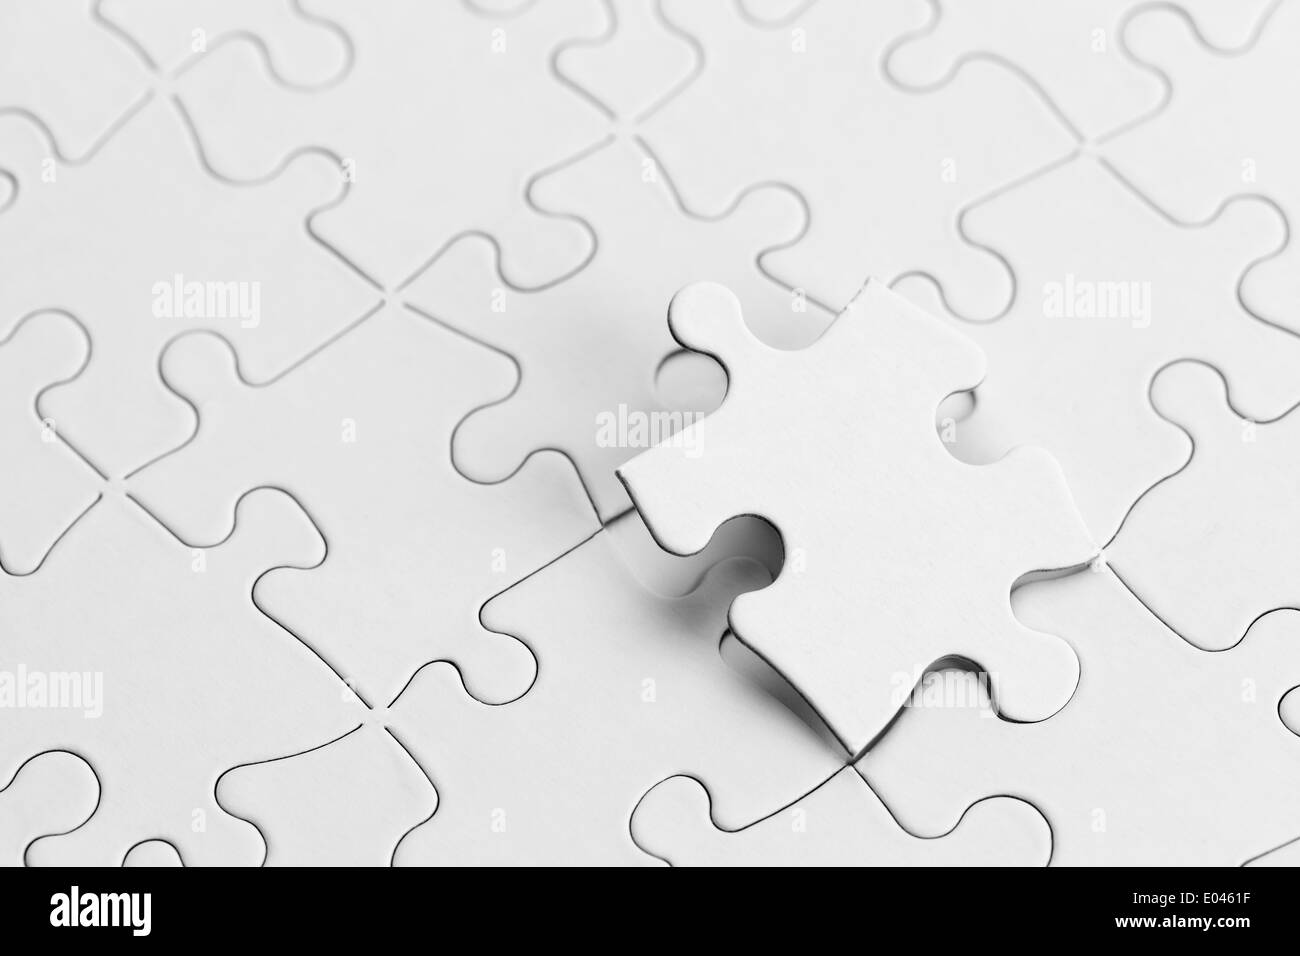 White Puzzle with Copy space and Puzzle Piece. - Stock Image